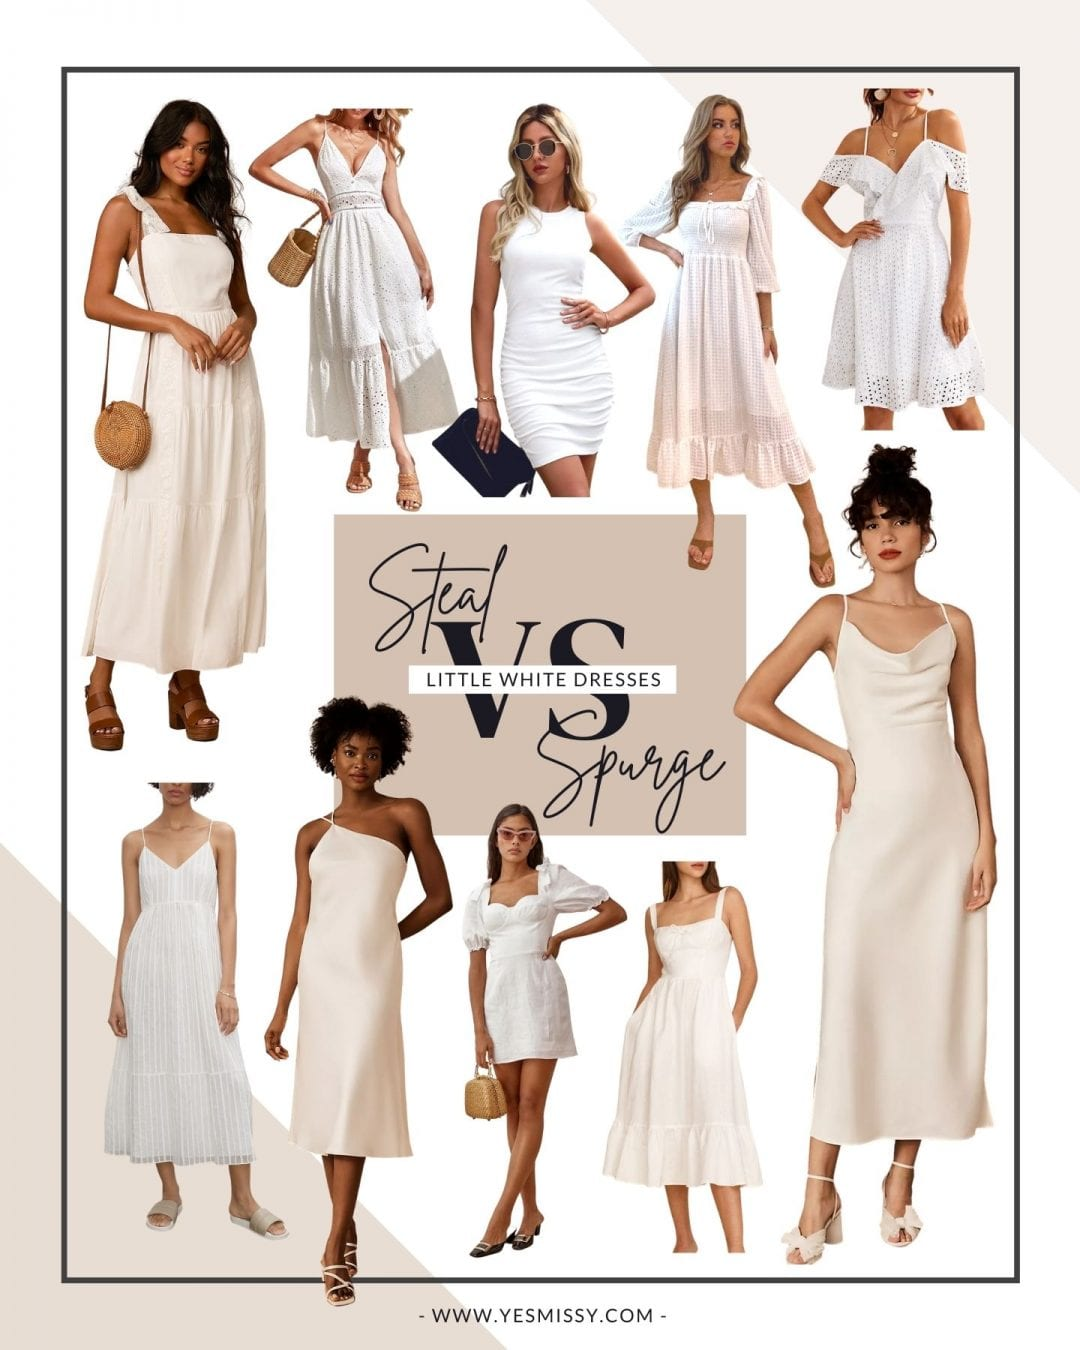 The best places to shop for little white dresses this summer, whether you're looking for a splurge or a steal of a deal! More on yesmissy.com